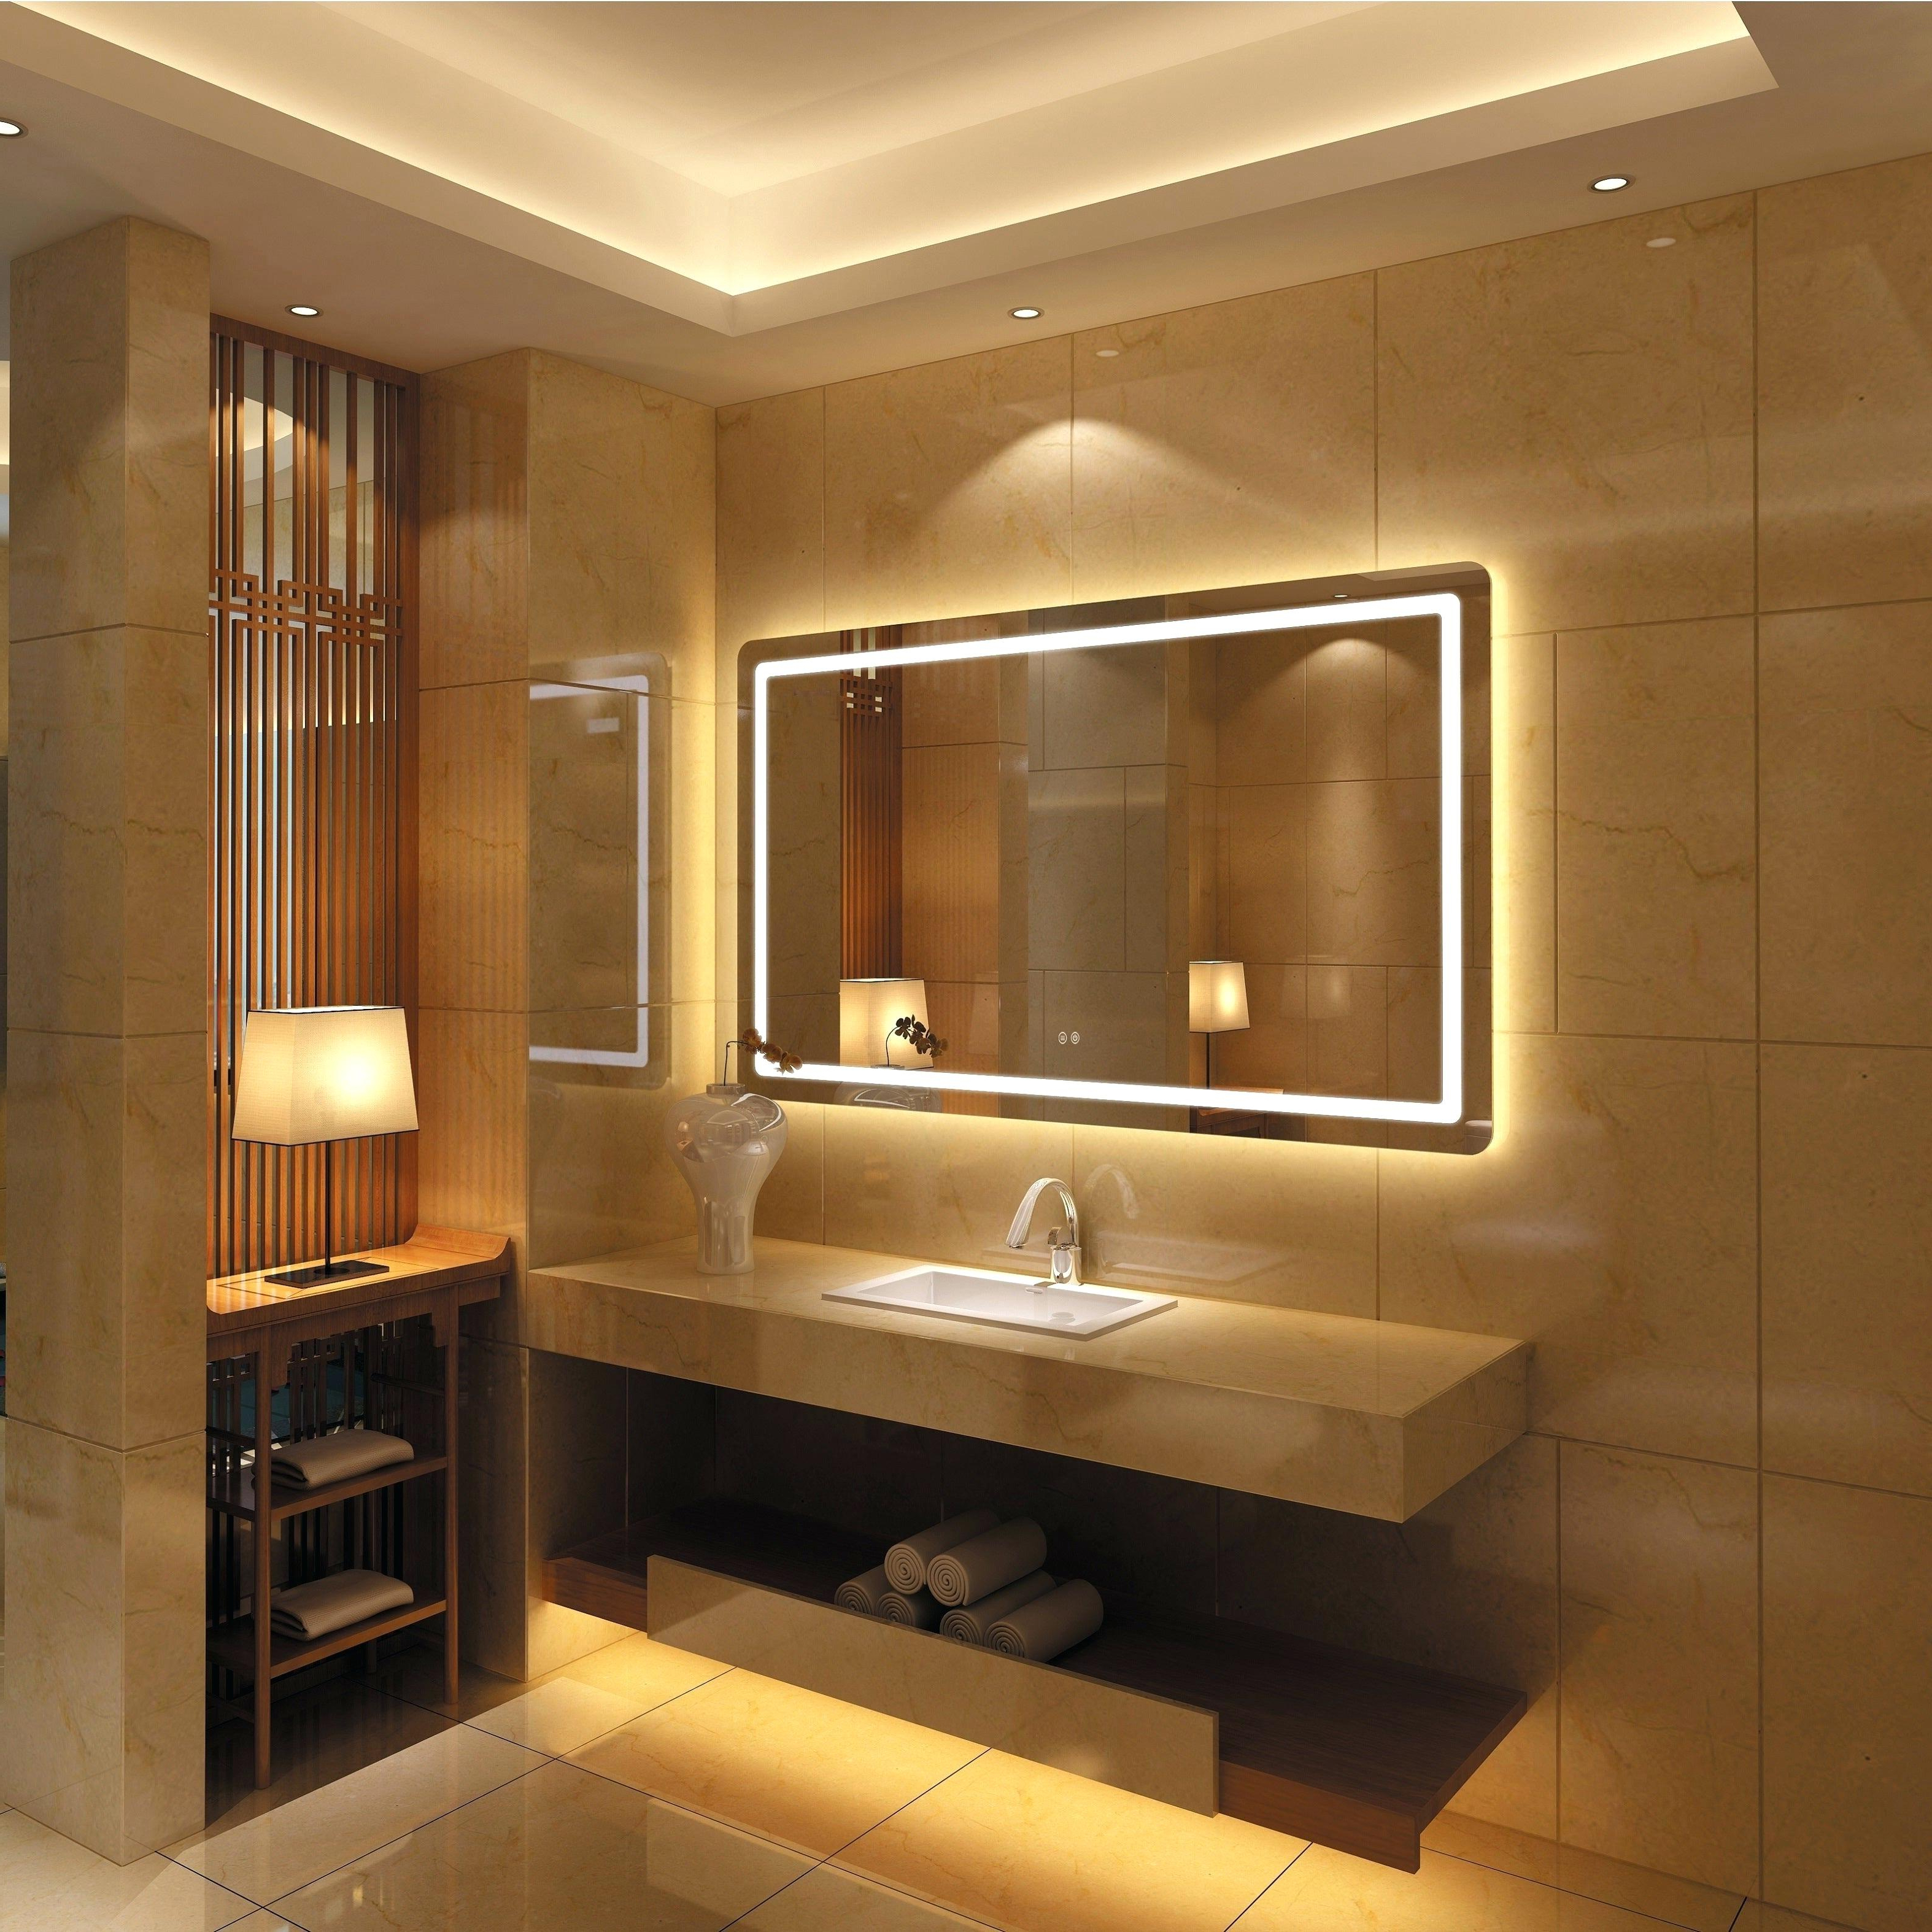 Full Wall Bathroom Mirror – Whenistheapocalypse Pertaining To Famous Bathroom Full Wall Mirrors (View 15 of 20)